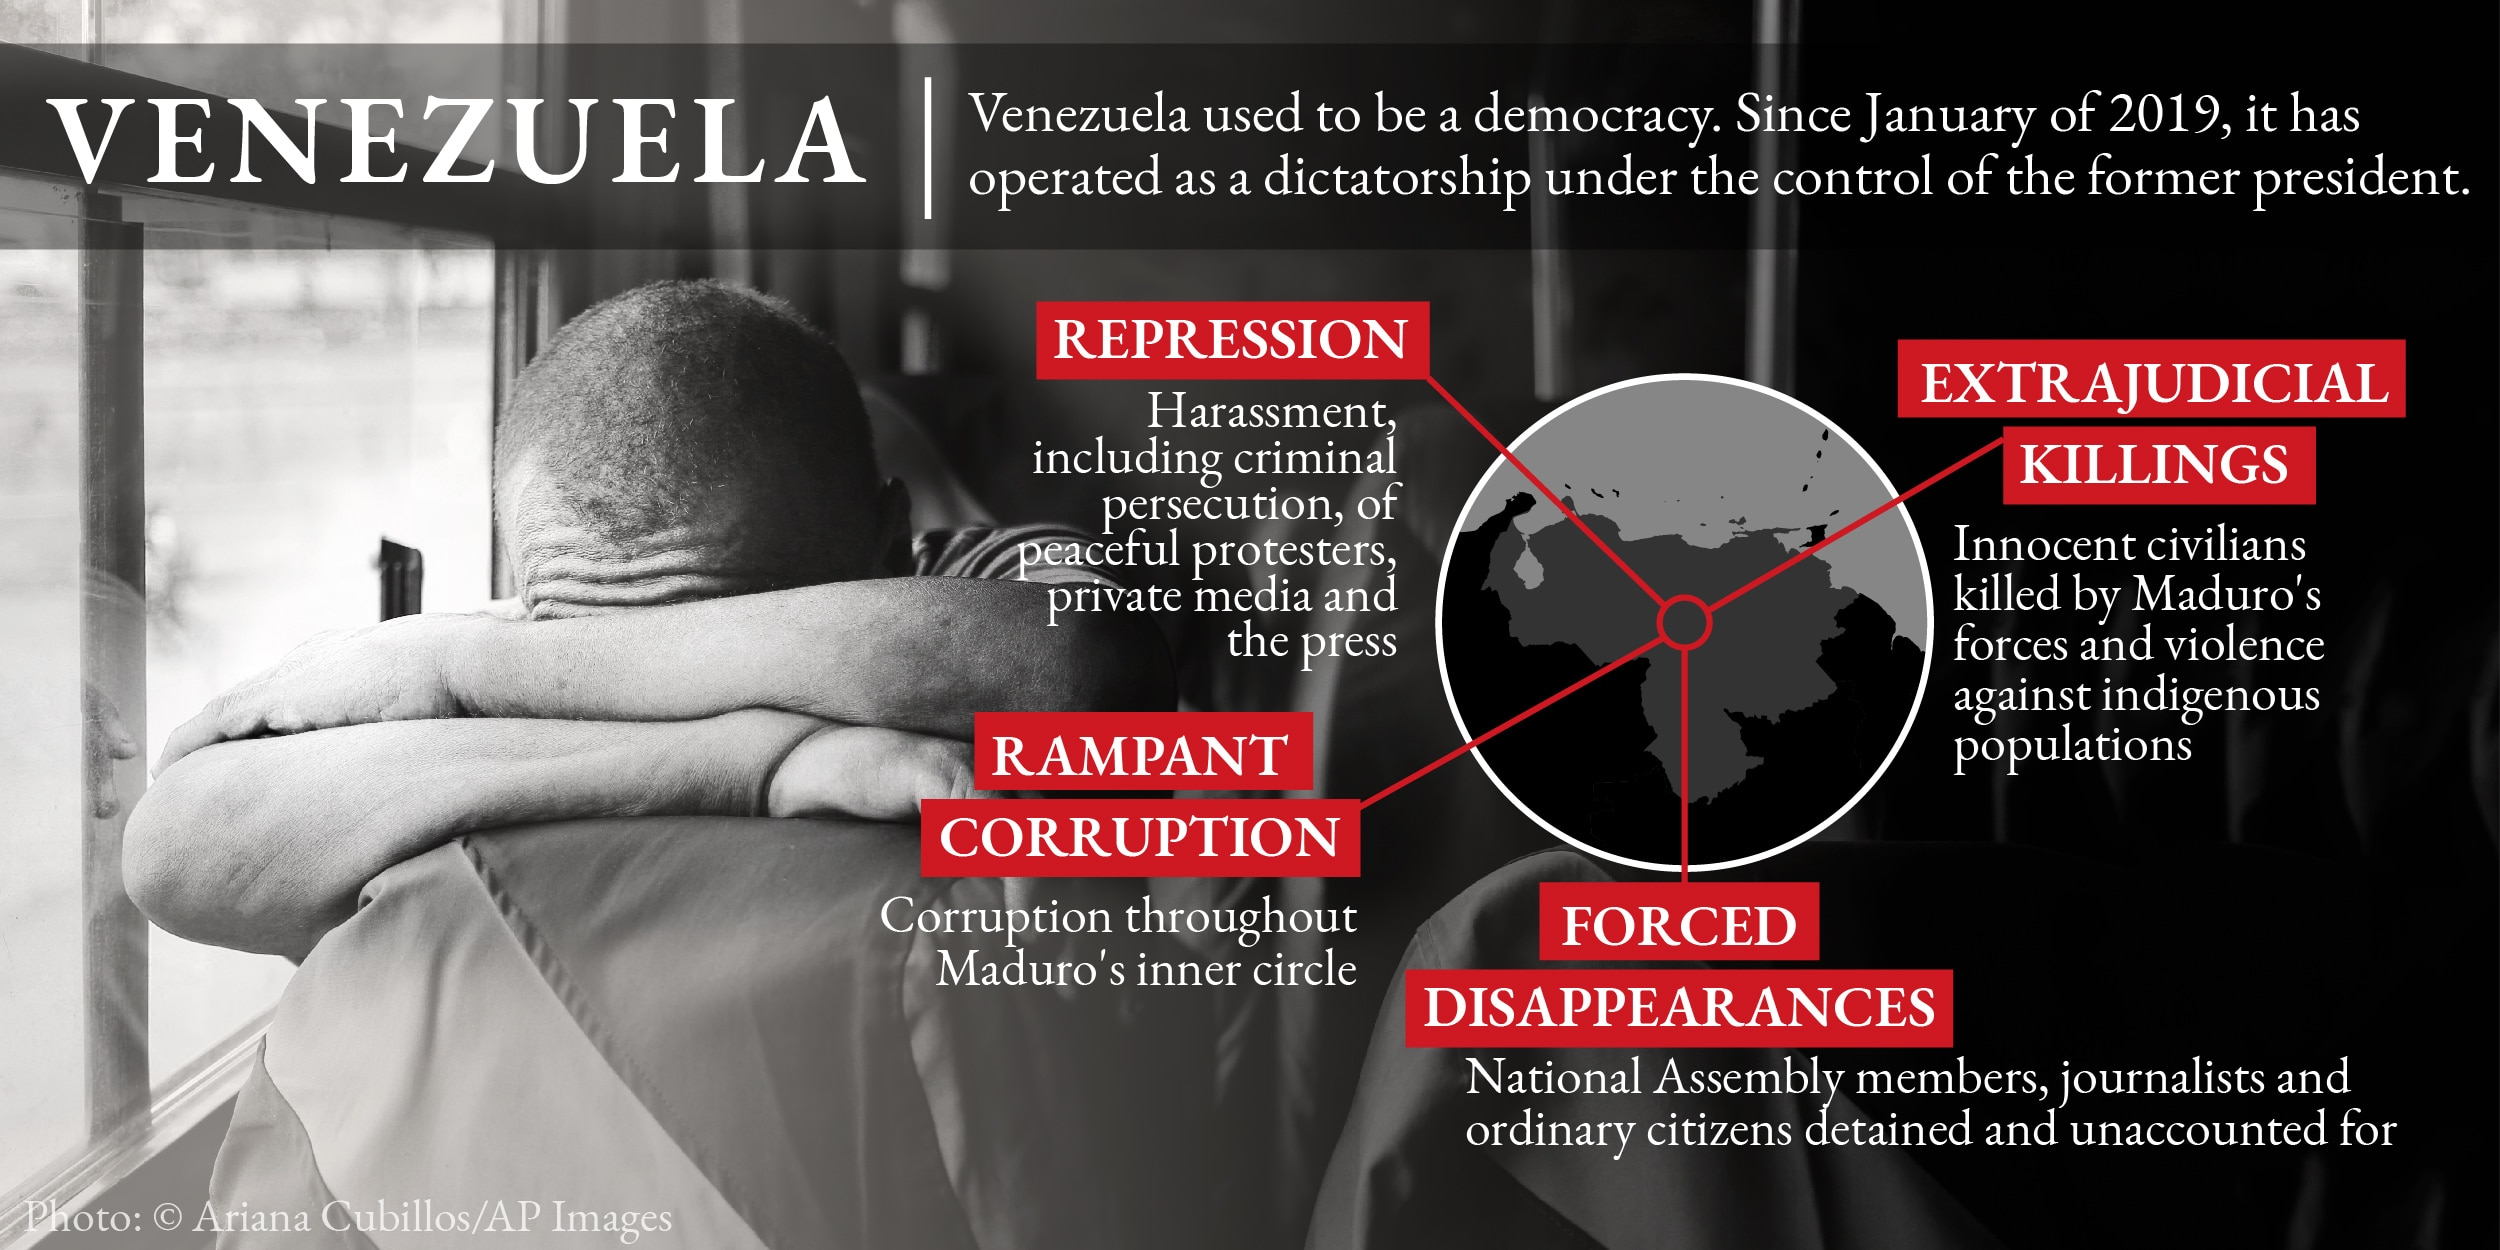 Infographic on Venezuela's human rights practices, with photo © Ariana Cubillos/AP Images (State Dept.)